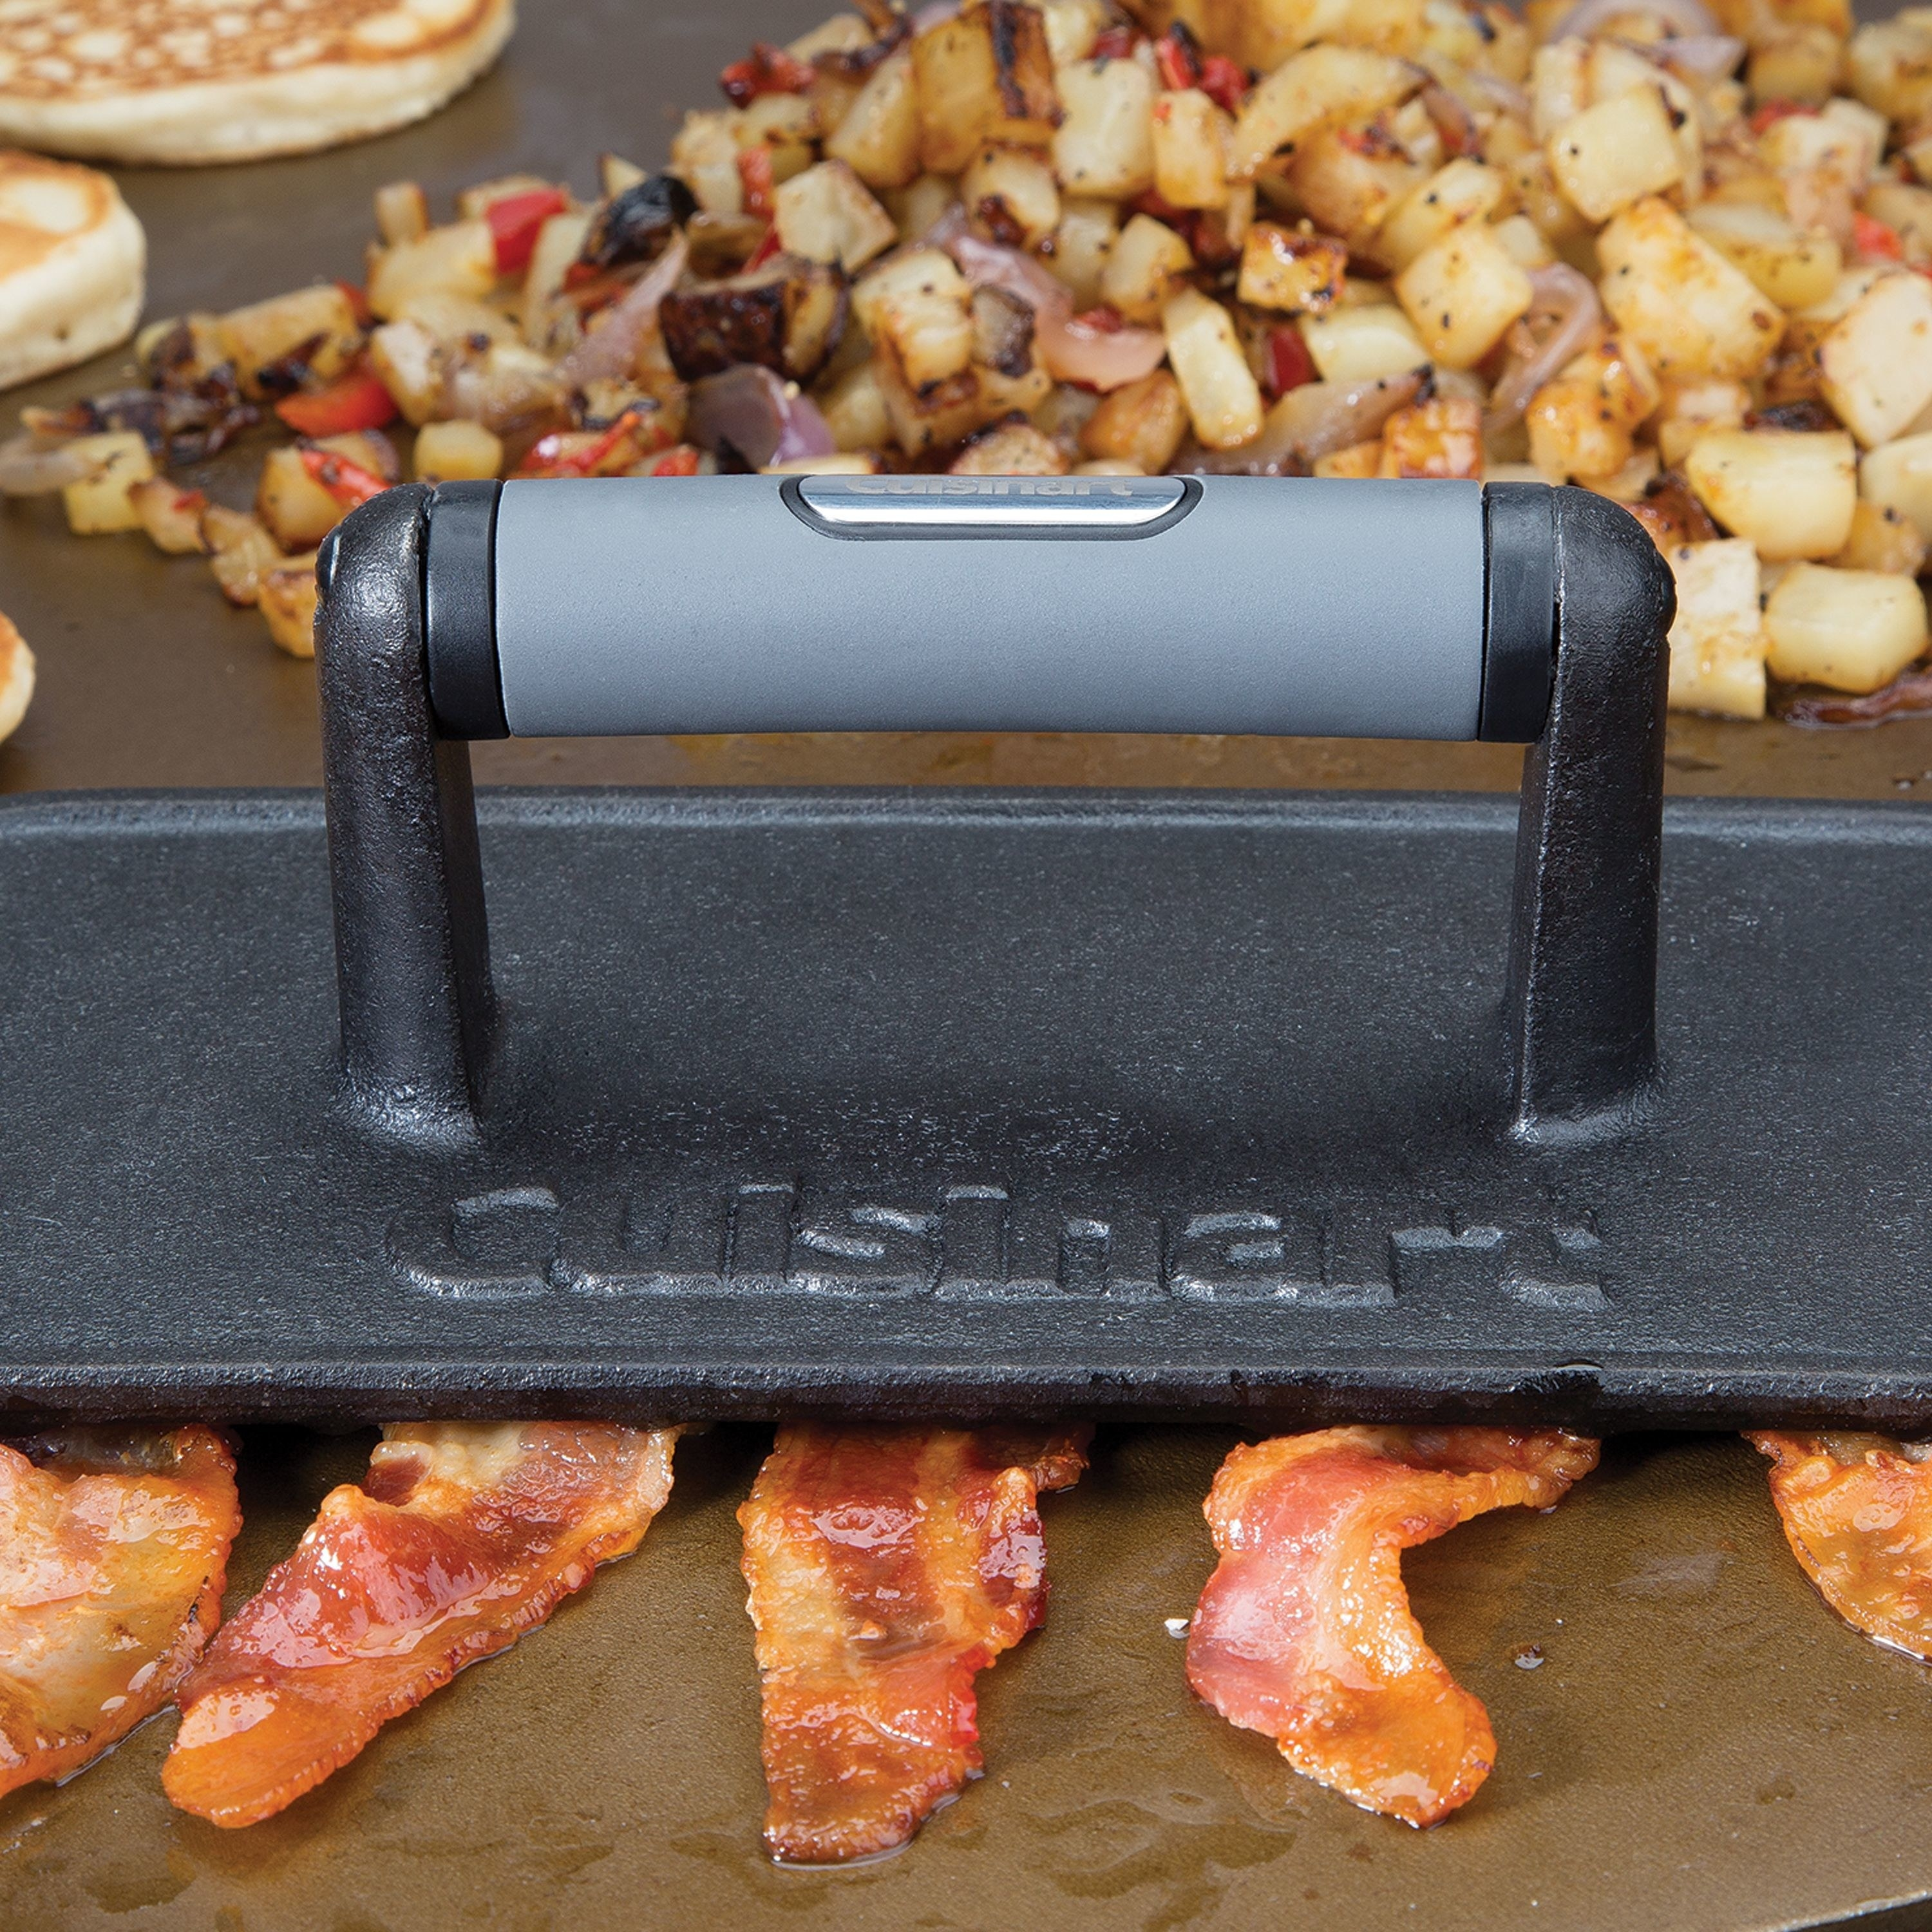 The cast iron grill press